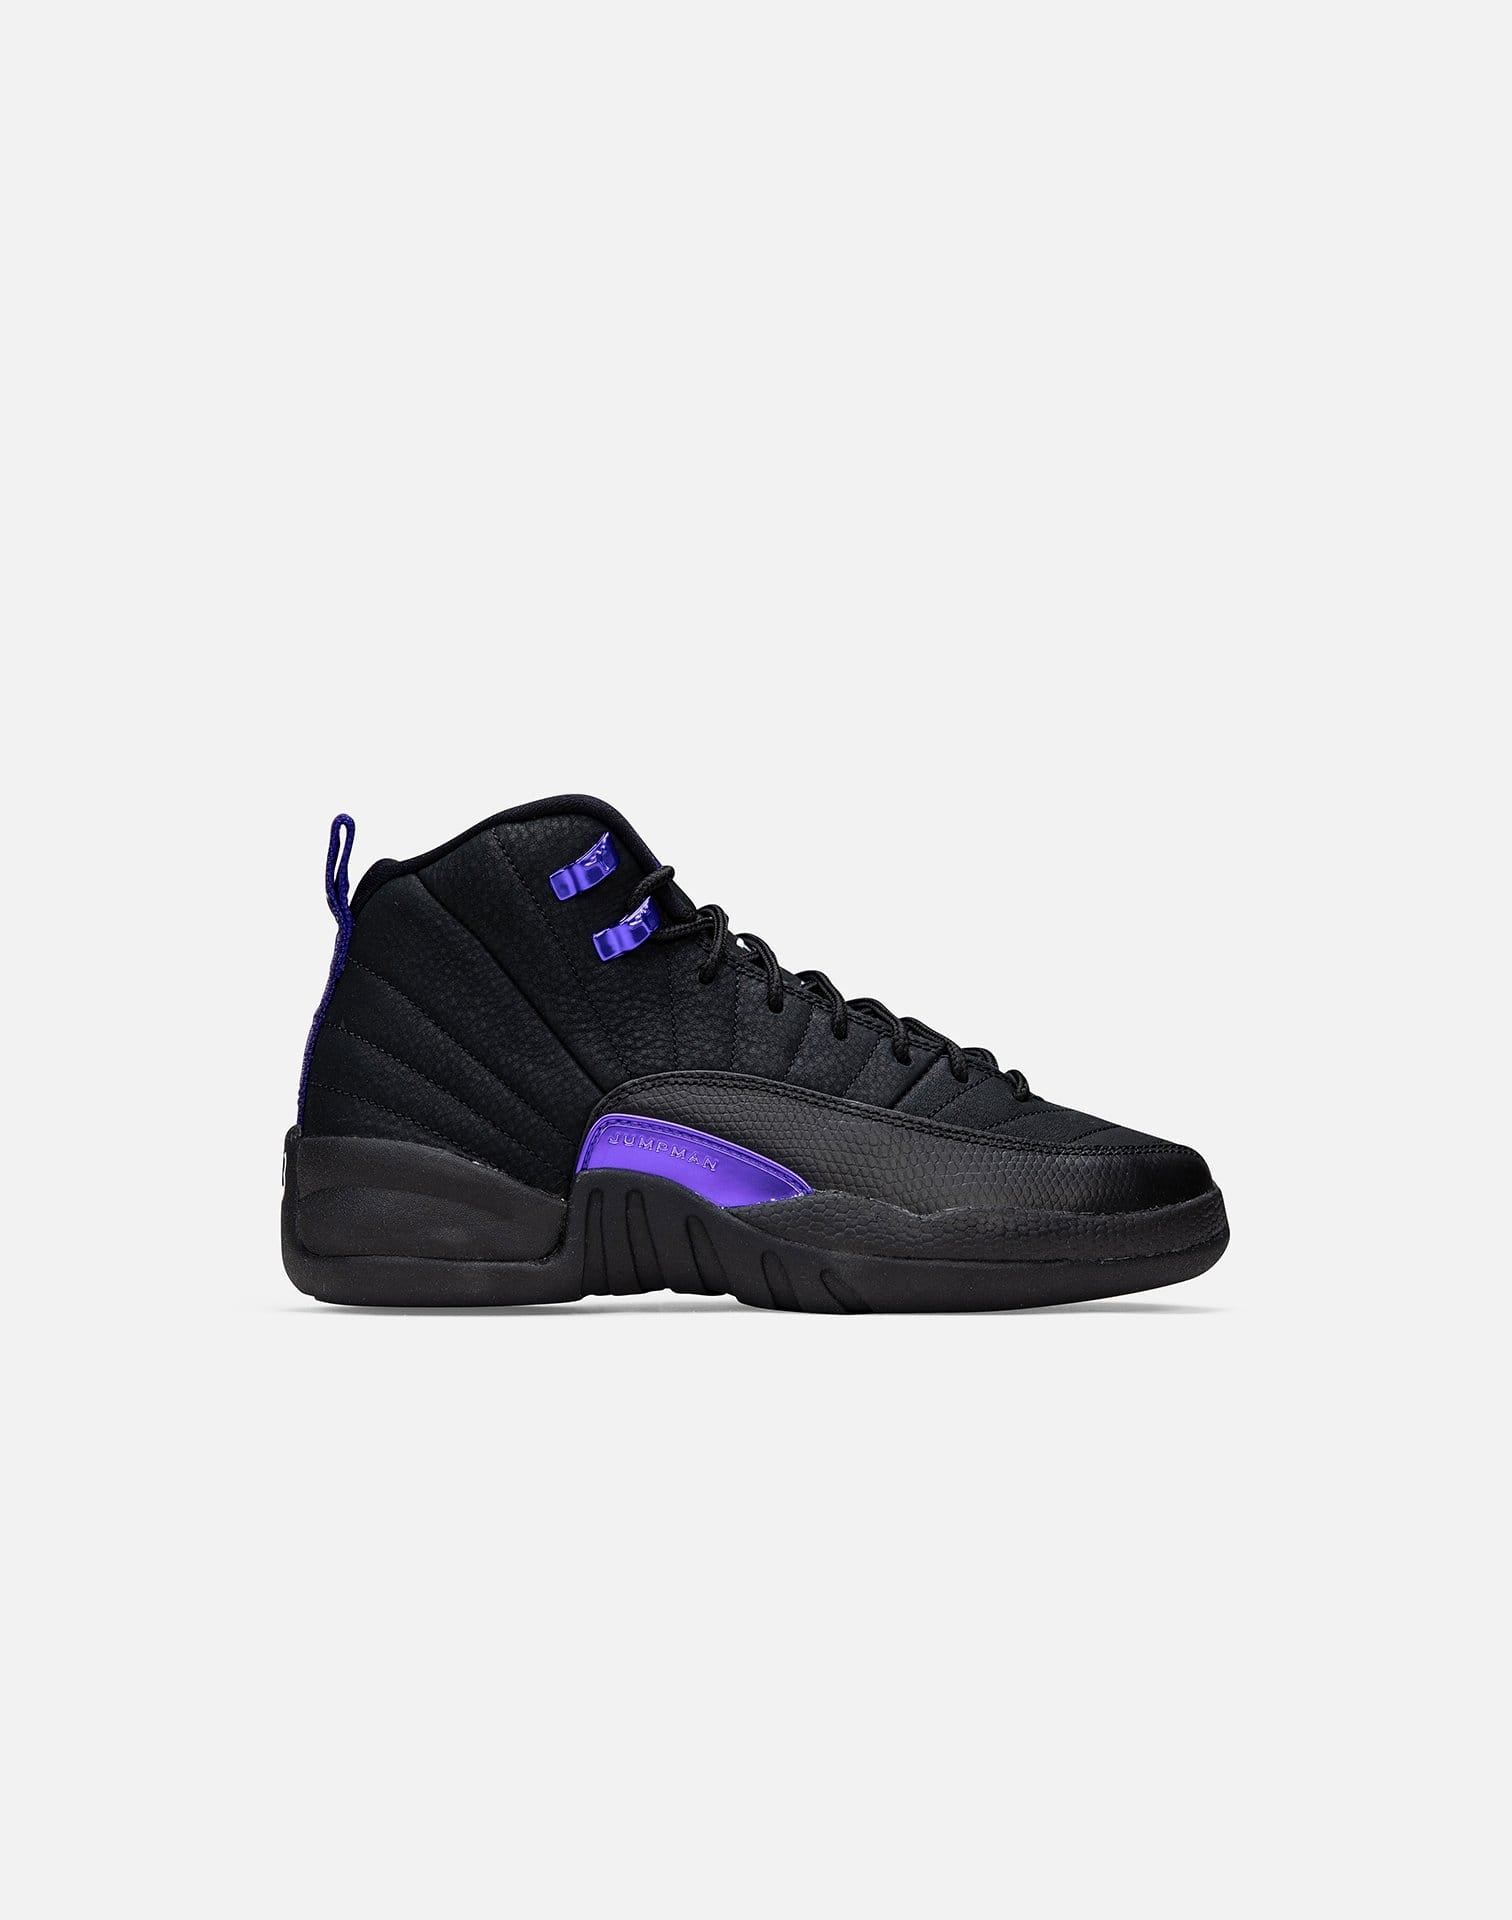 Jordan AIR JORDAN RETRO 12 'BLACK CONCORD' GRADE-SCHOOL